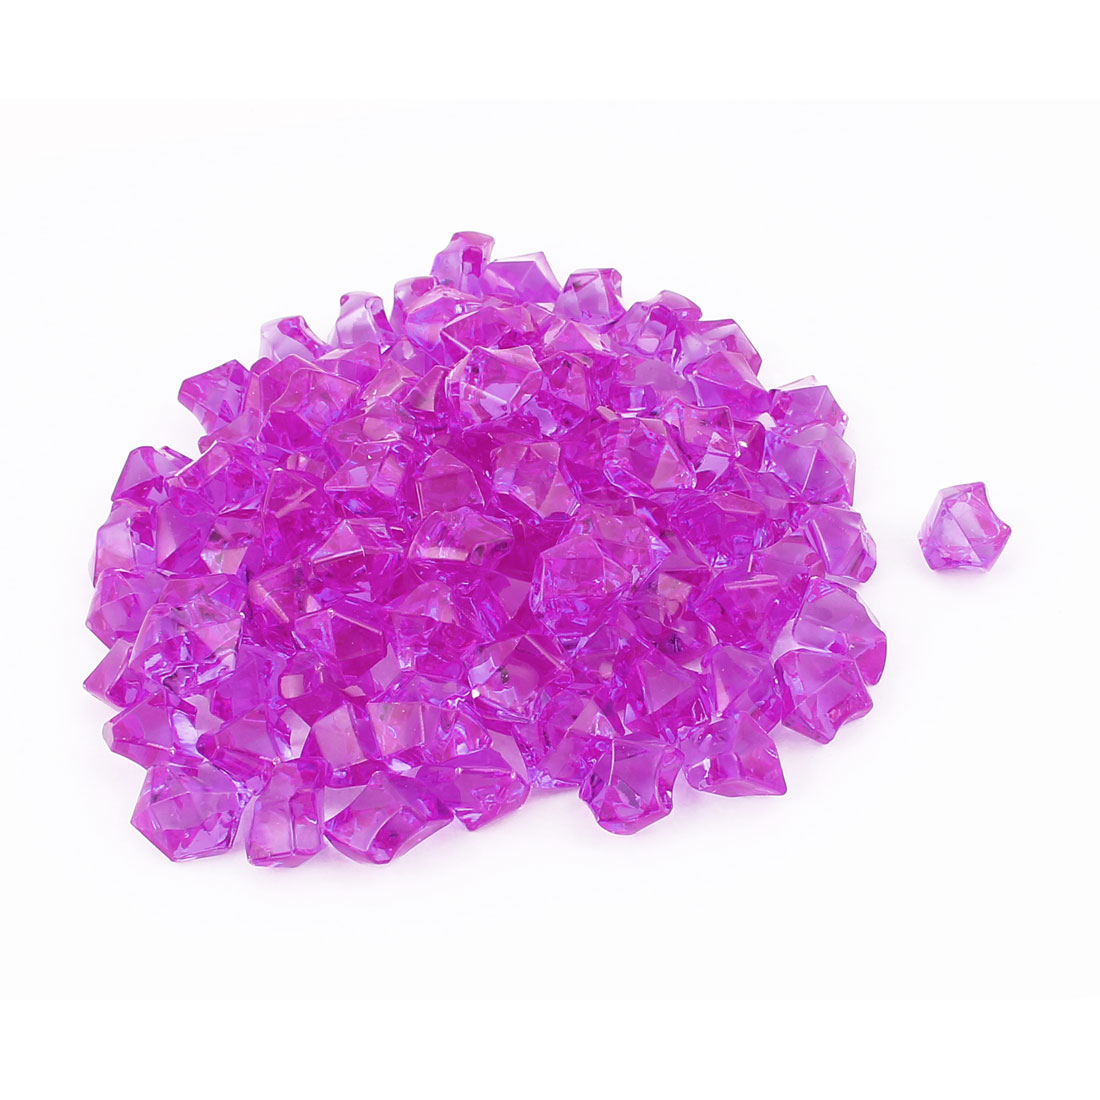 110 Pcs 1.5cm Length Purple Plastic Atificial Polygon Decoration Aquarium Ornament Crystal Stones for Fish Tank